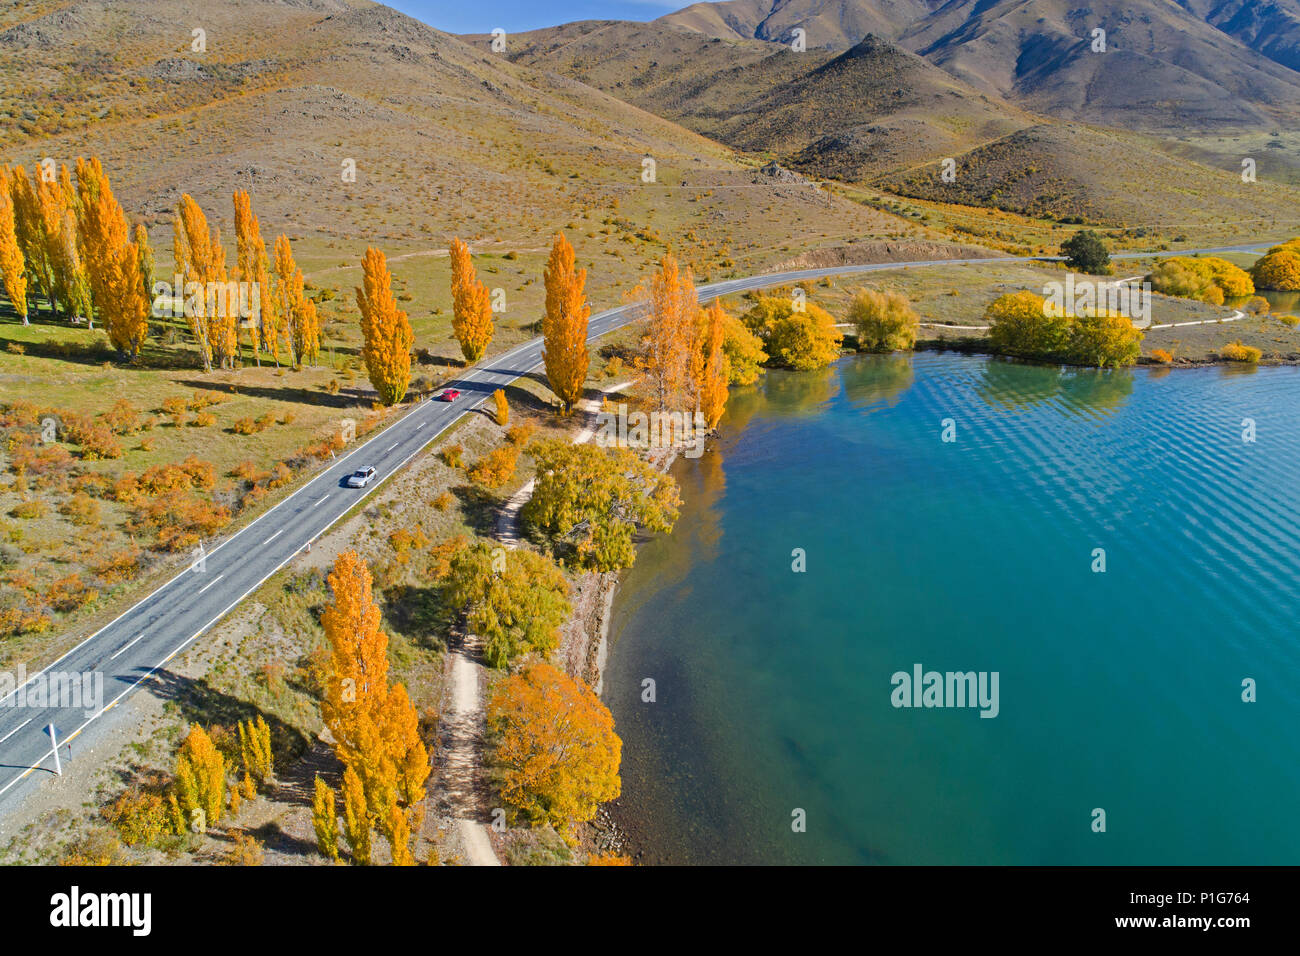 Highway and Alps 2 Ocean Cycle Trail, and Lake Benmore, Waitaki Valley, North Otago, South Island, New Zealand - drone aerial - Stock Image